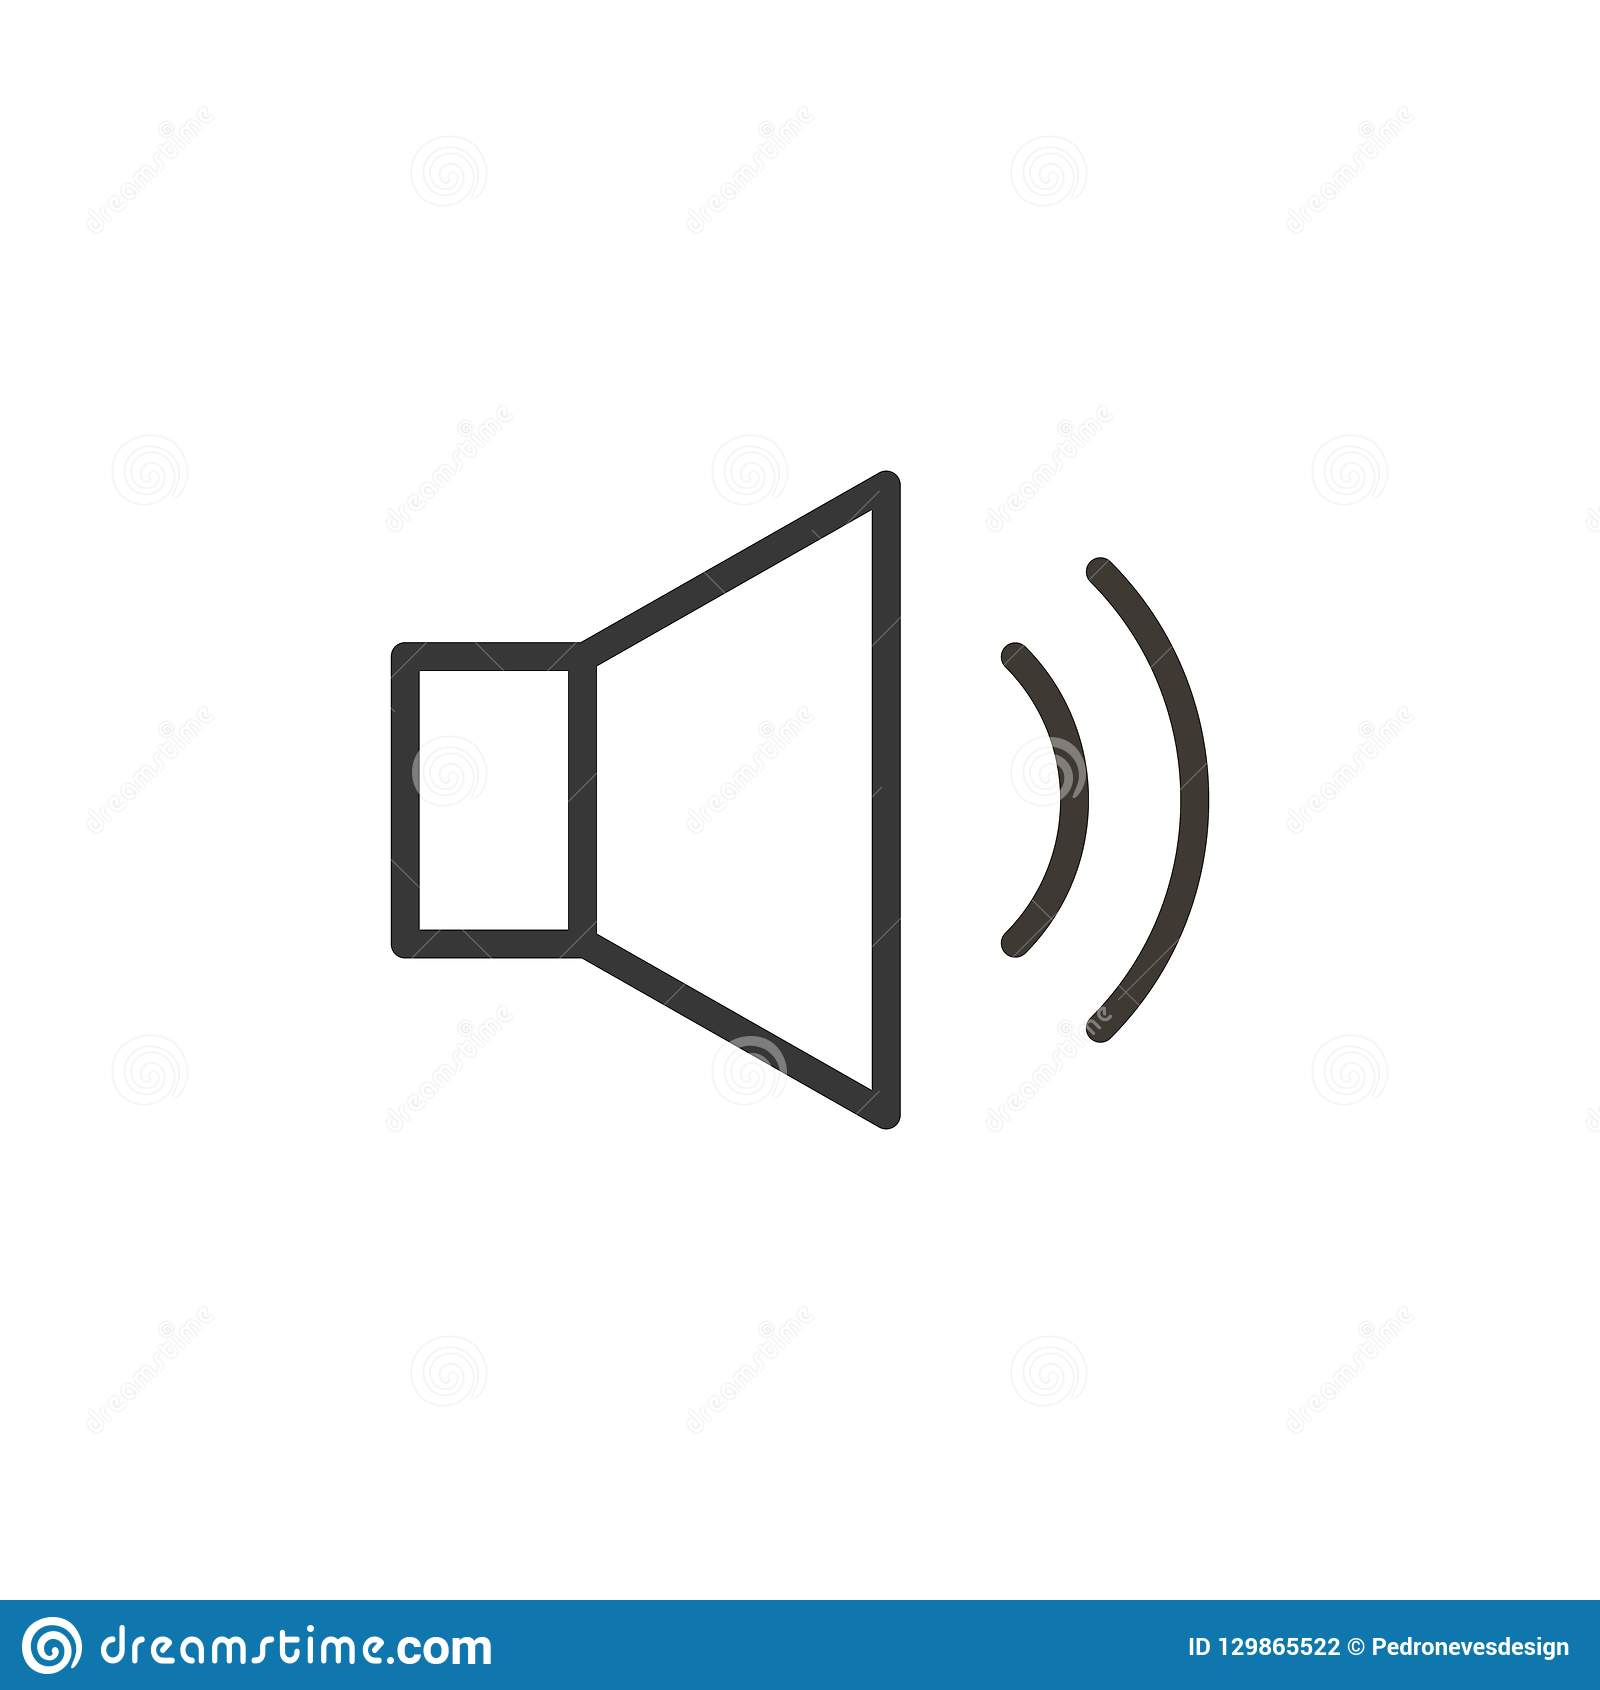 Audio or music speaker icon. Vector thin line button for interface related with music and sound